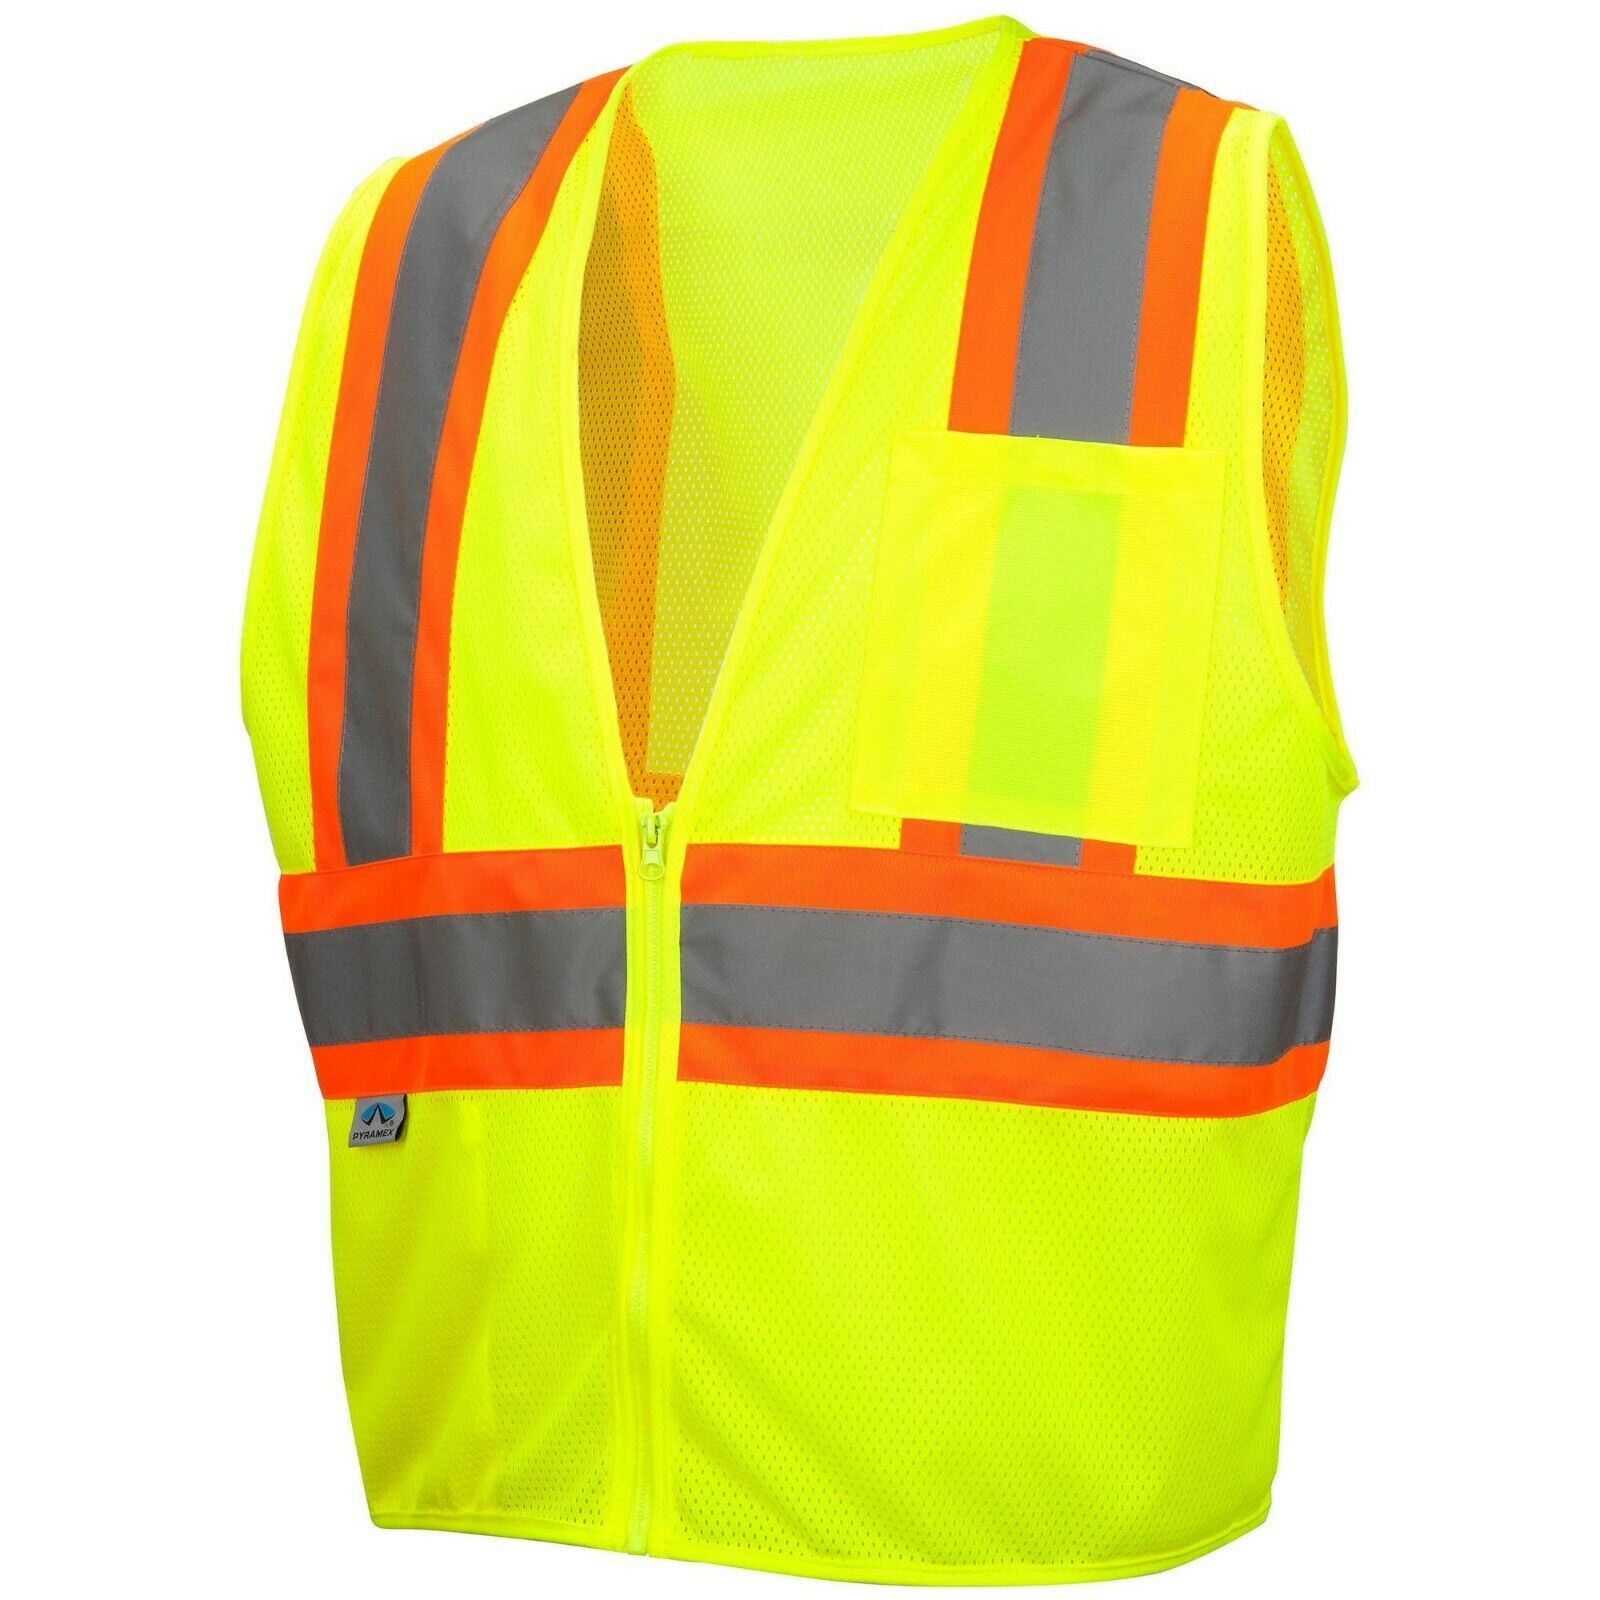 Pyramex RVZ2210 Type R Class 2 Mesh Two-Tone Safety Vest – Yellow/Lime – M-5XL Business & Industrial